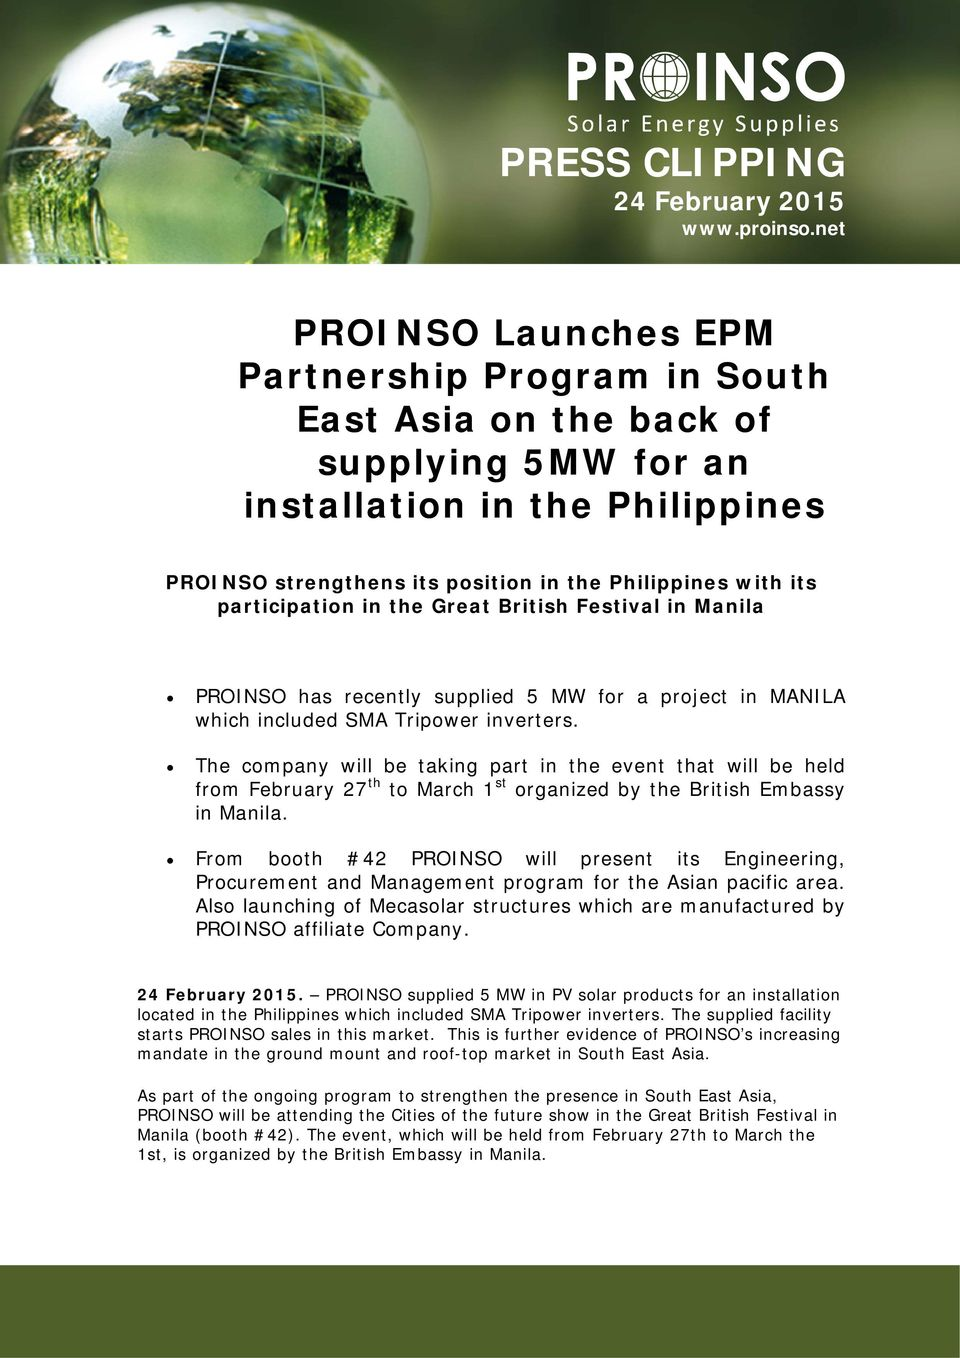 participation in the Great British Festival in Manila PROINSO has recently supplied 5 MW for a project in MANILA which included SMA Tripower inverters.